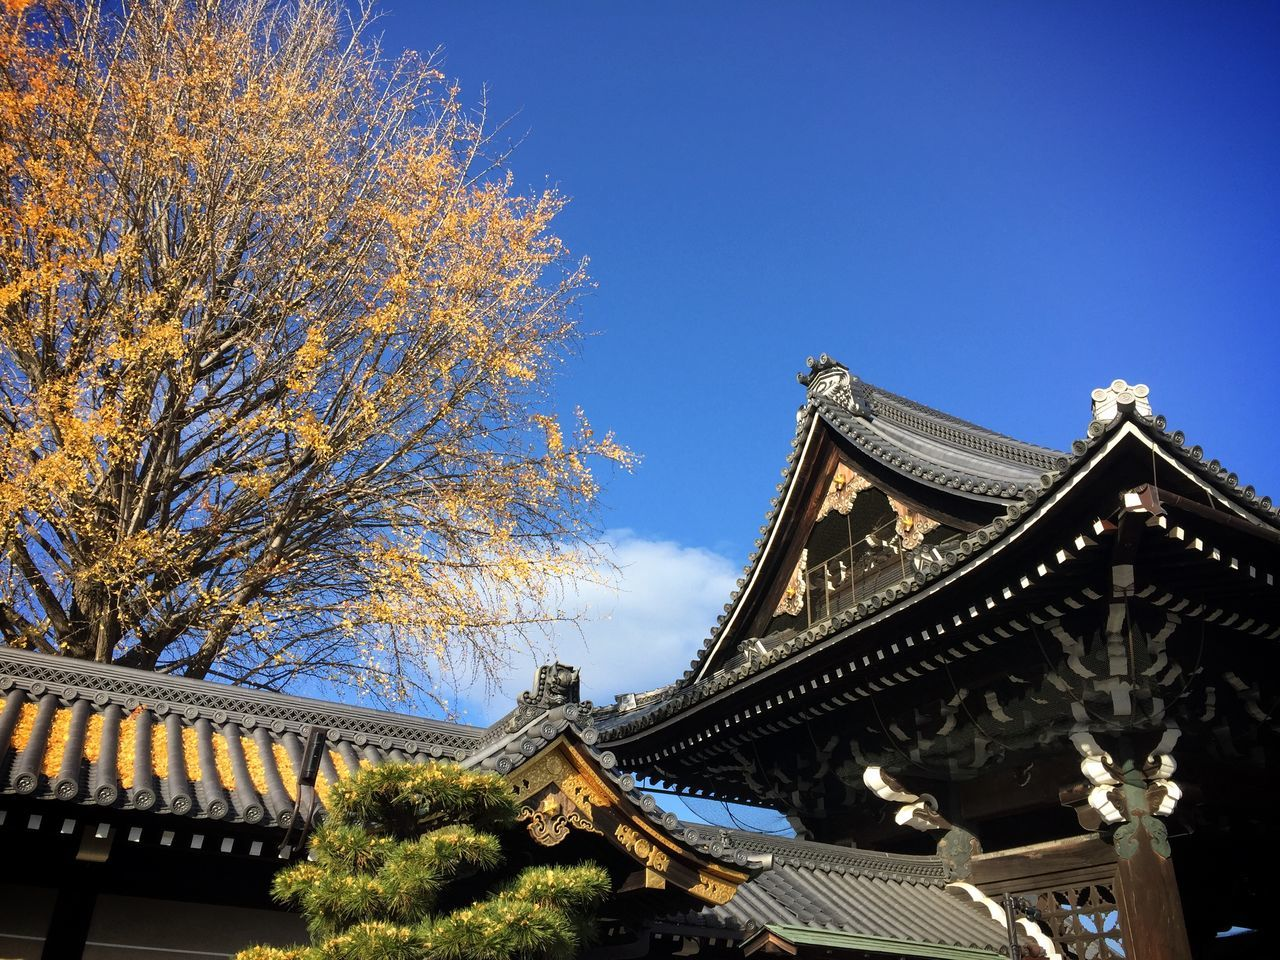 Low Angle View Of Nishi Honganji Temple Against Blue Sky